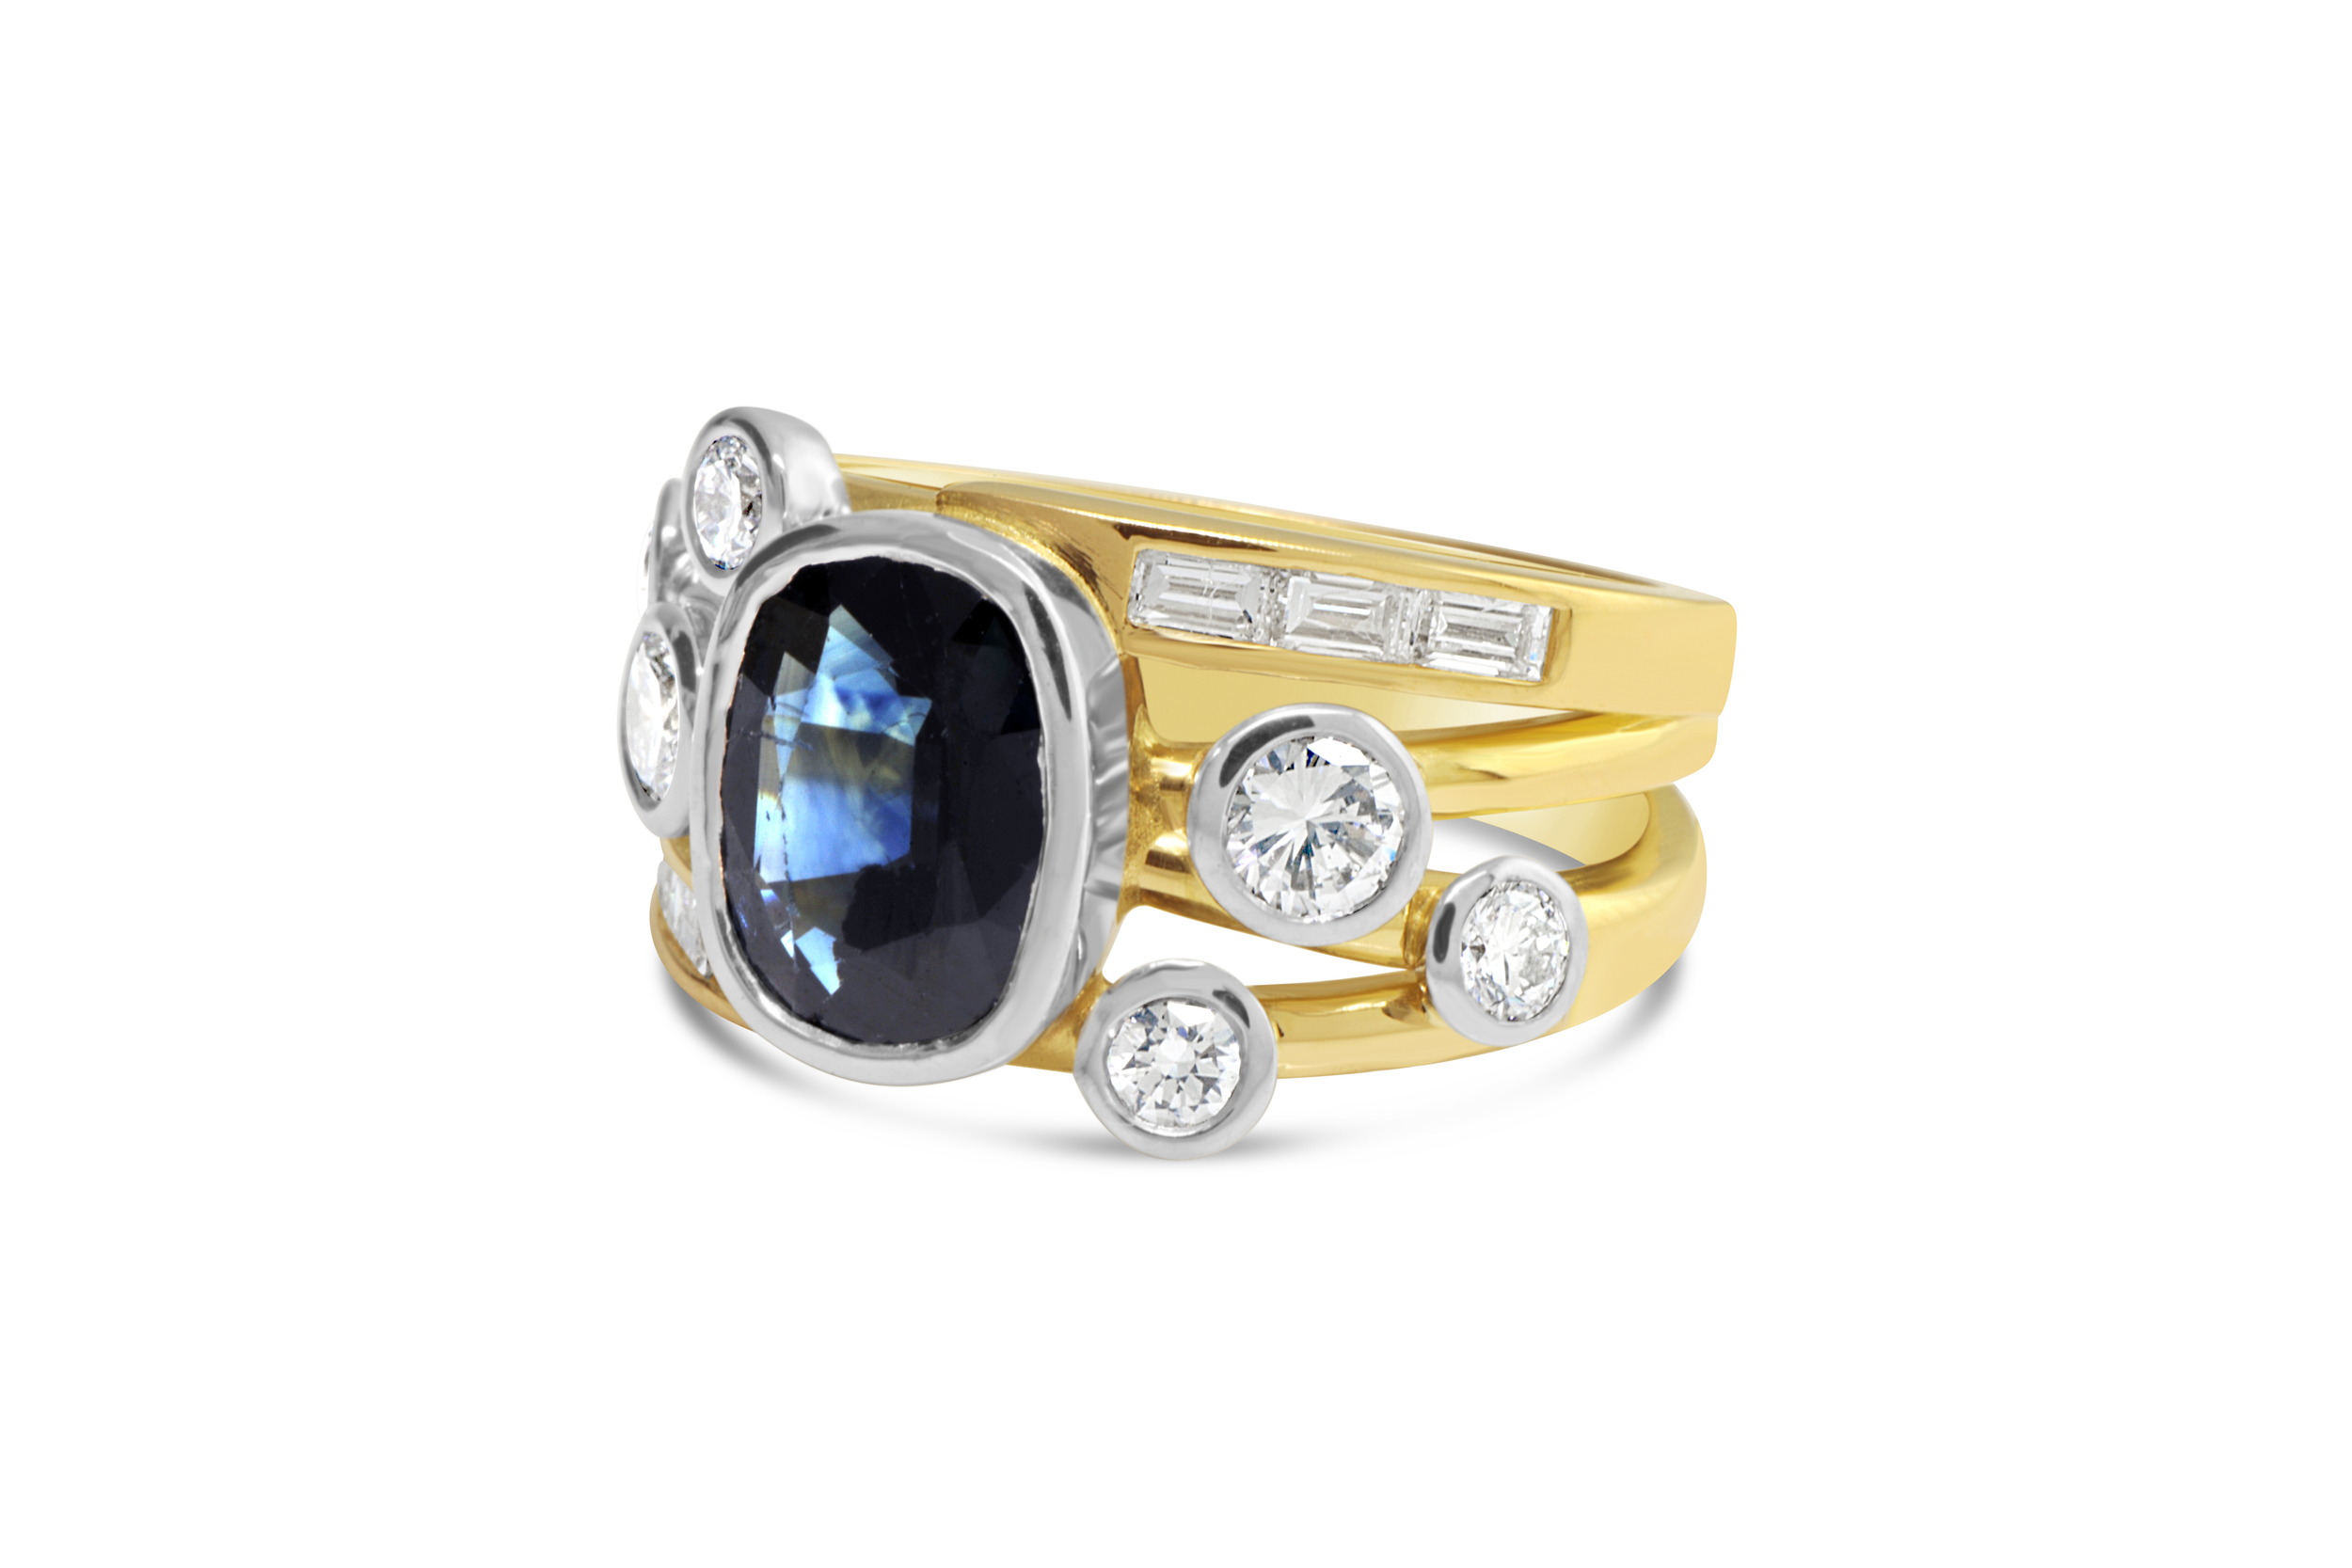 A combination of a few worn out rings into one spectacular creation. Have your next piece of jewellery created just for you using your treasured gemstones.